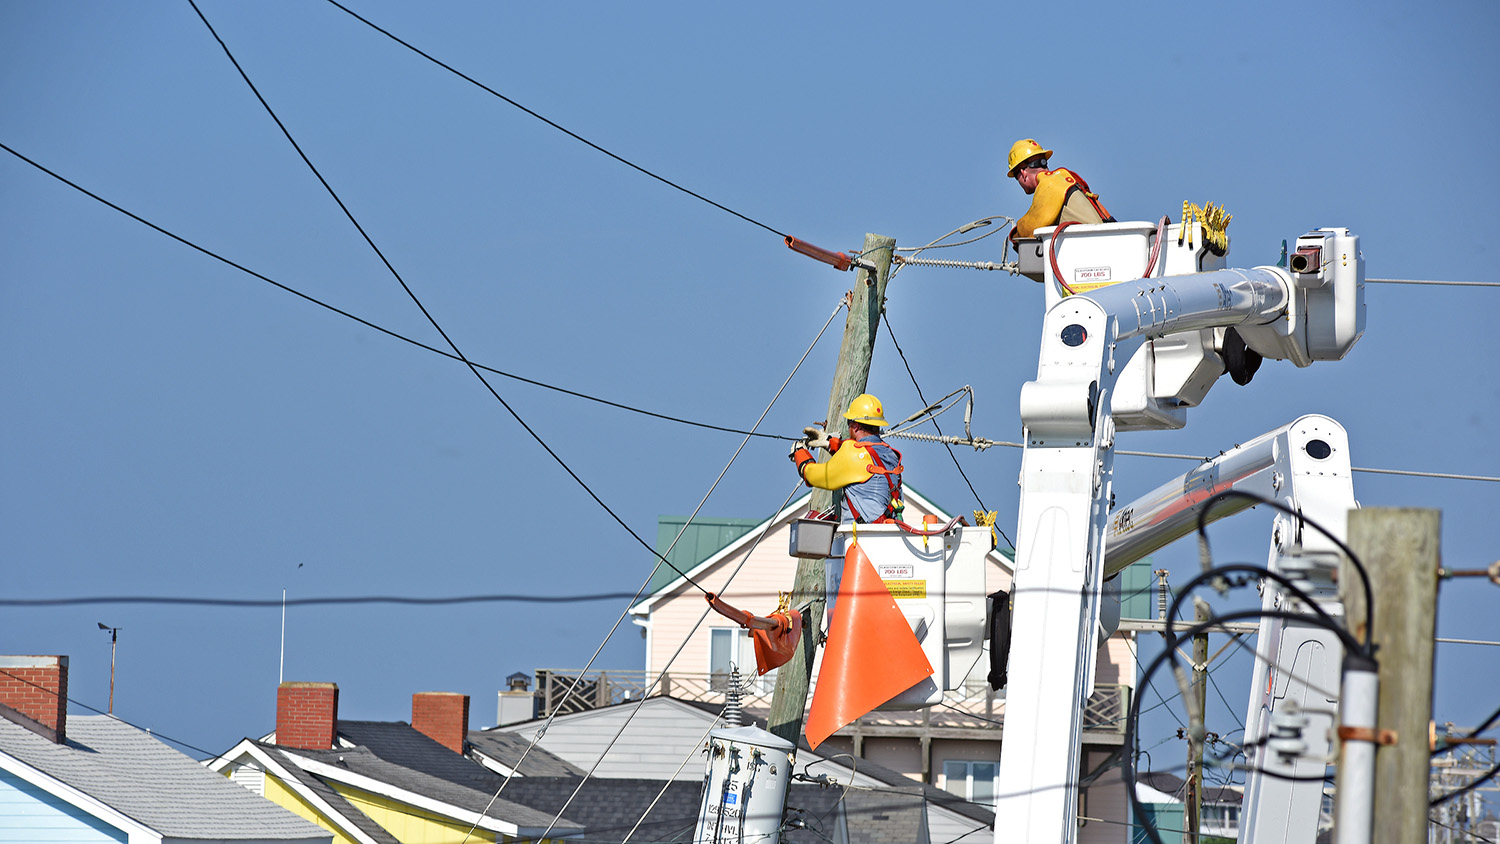 Linemen work on electric lines and poles at Atlantic Beach, NC.